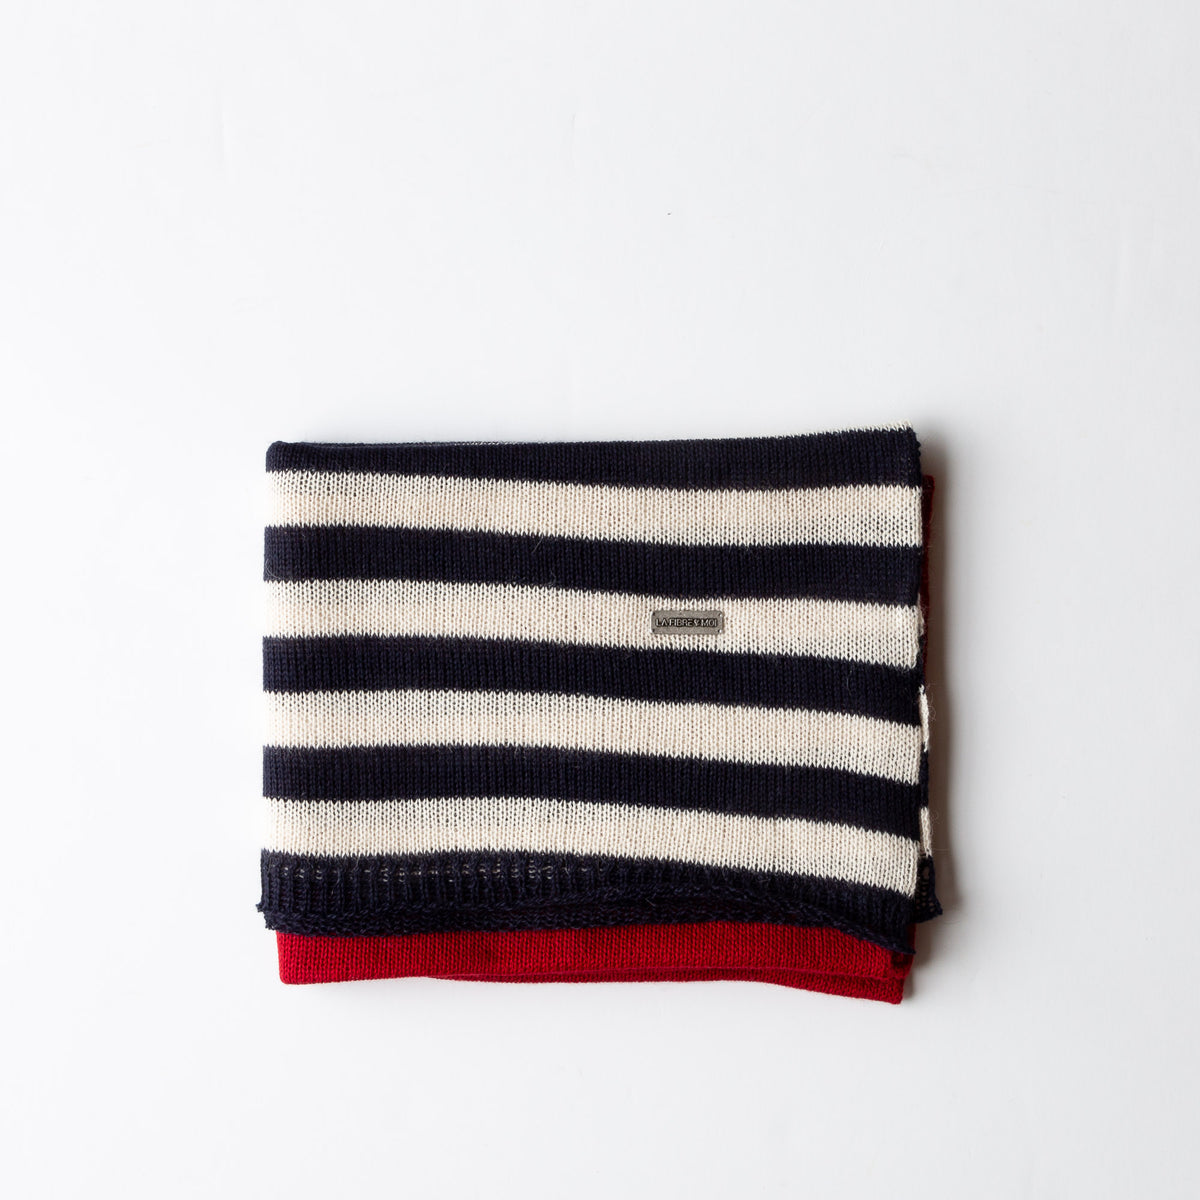 A long thin knit scarf with wide stripes at the ends.